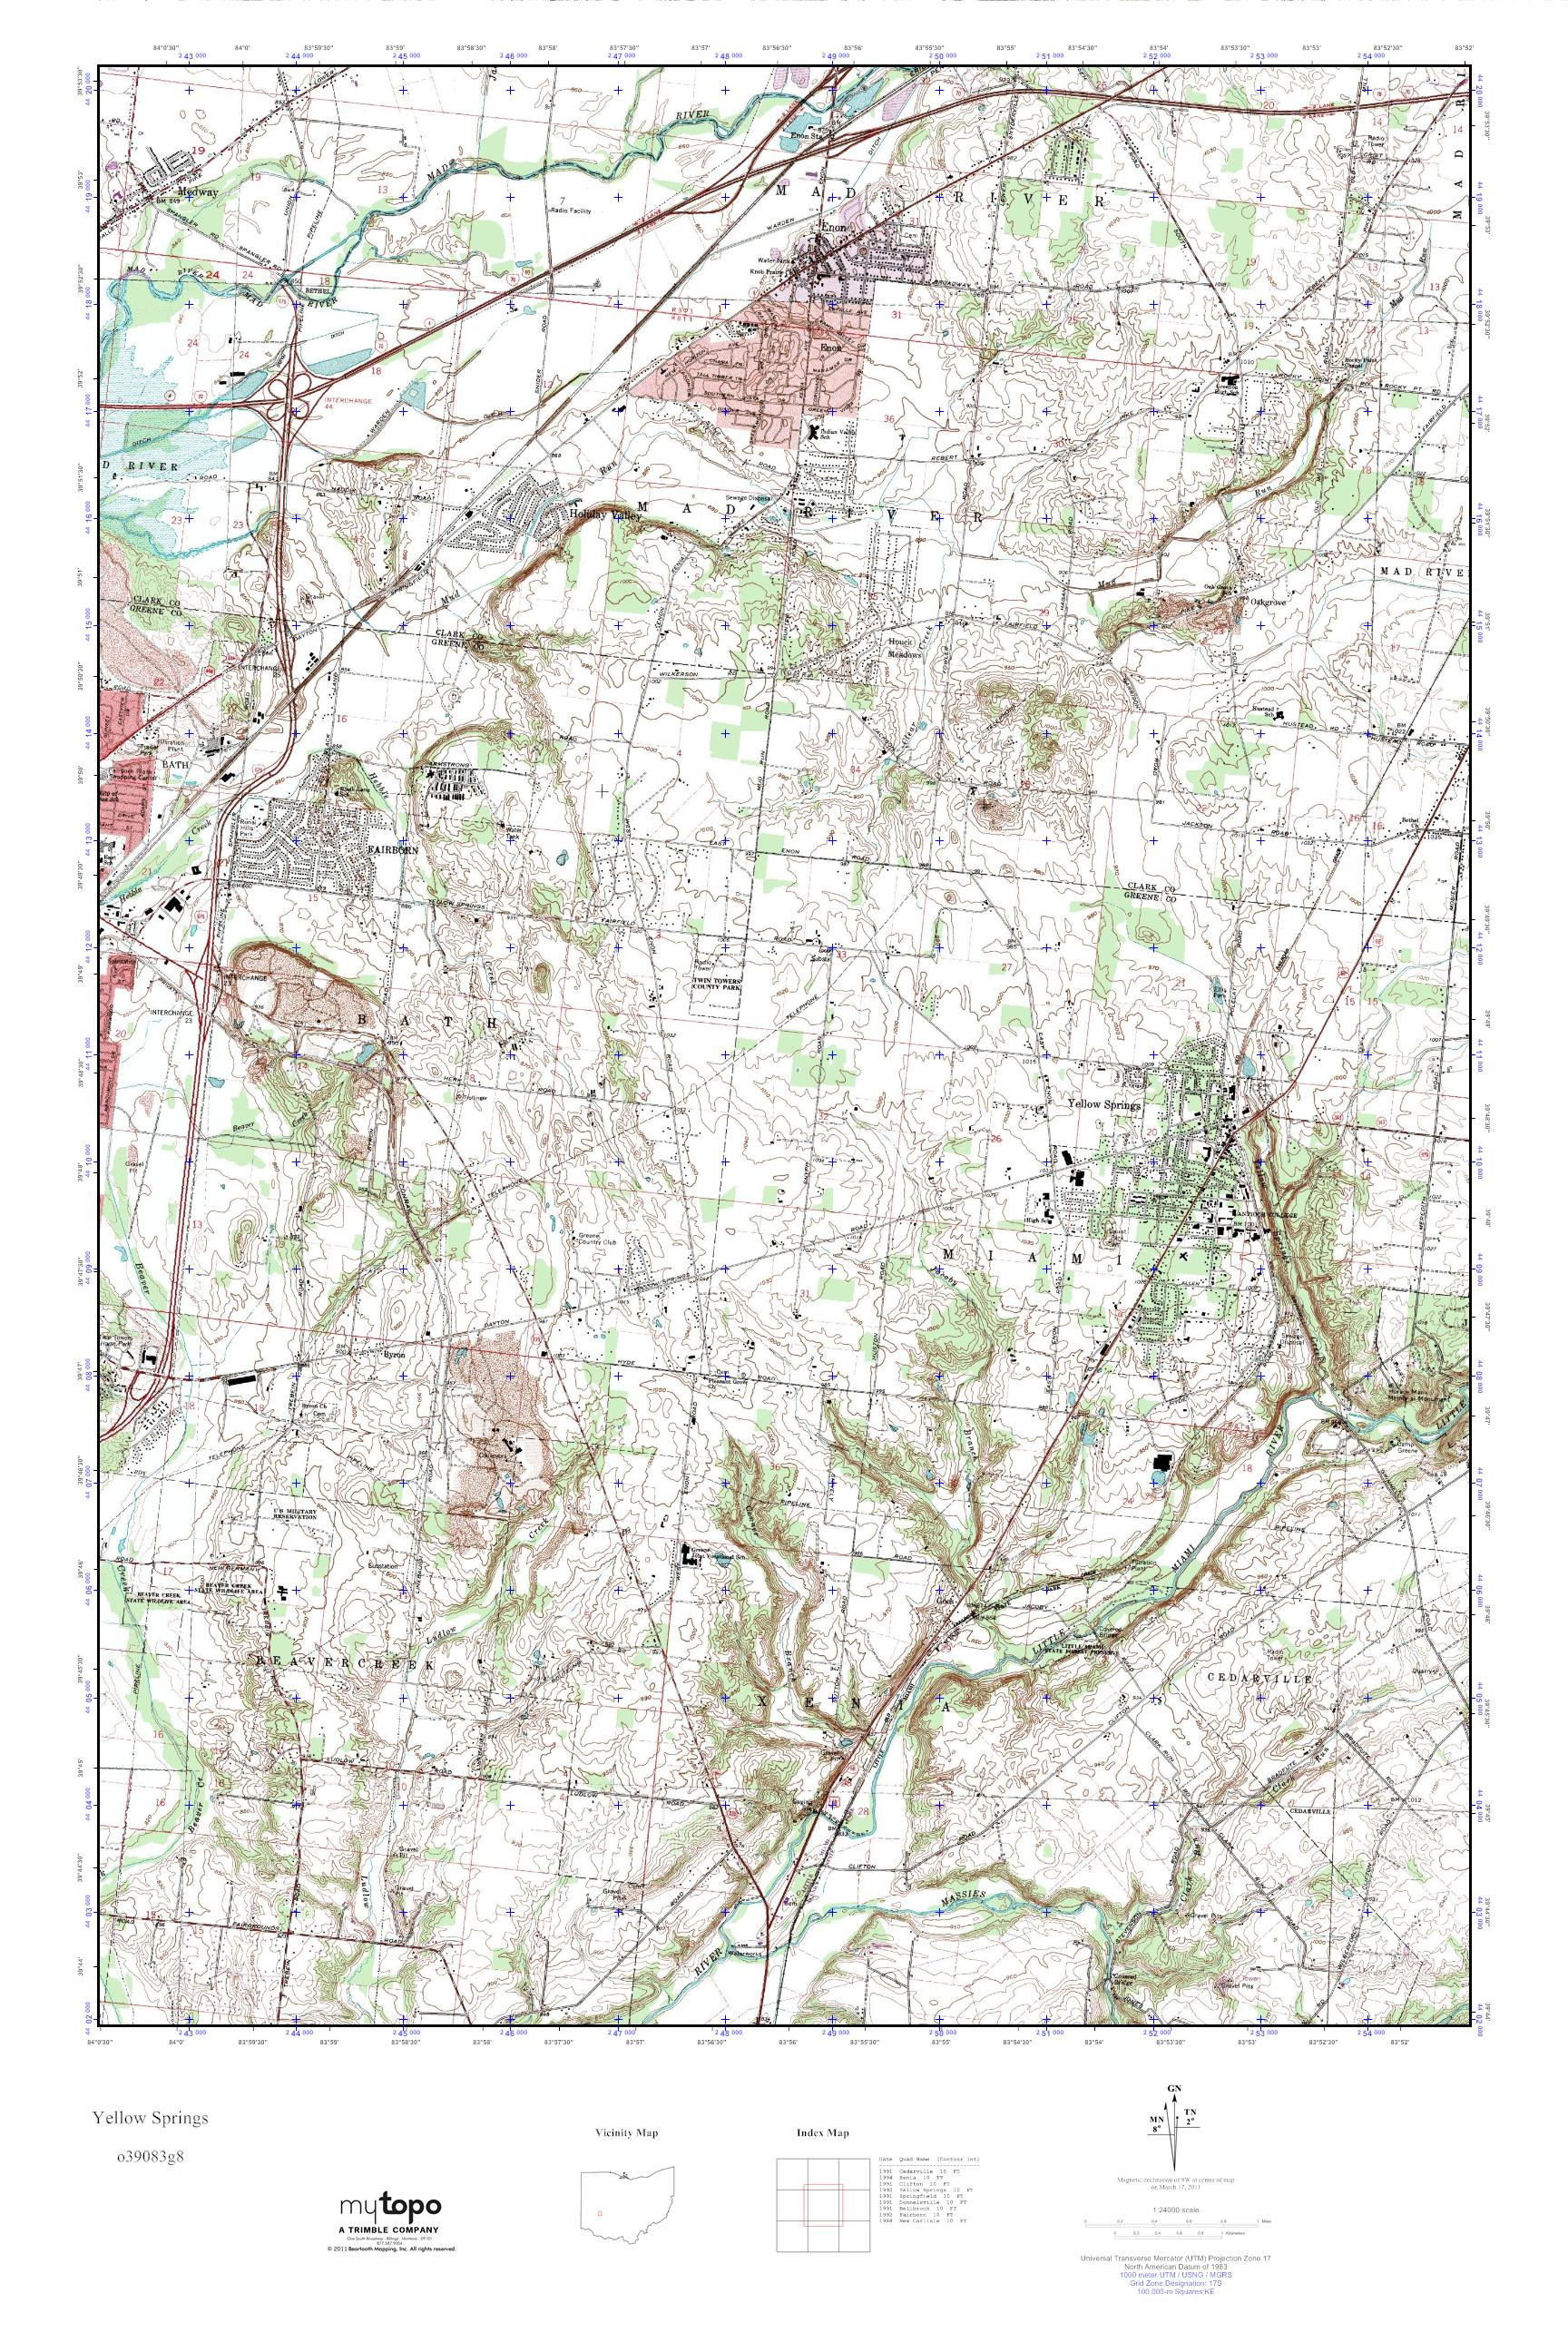 Mytopo Yellow Springs Ohio Usgs Quad Topo Map